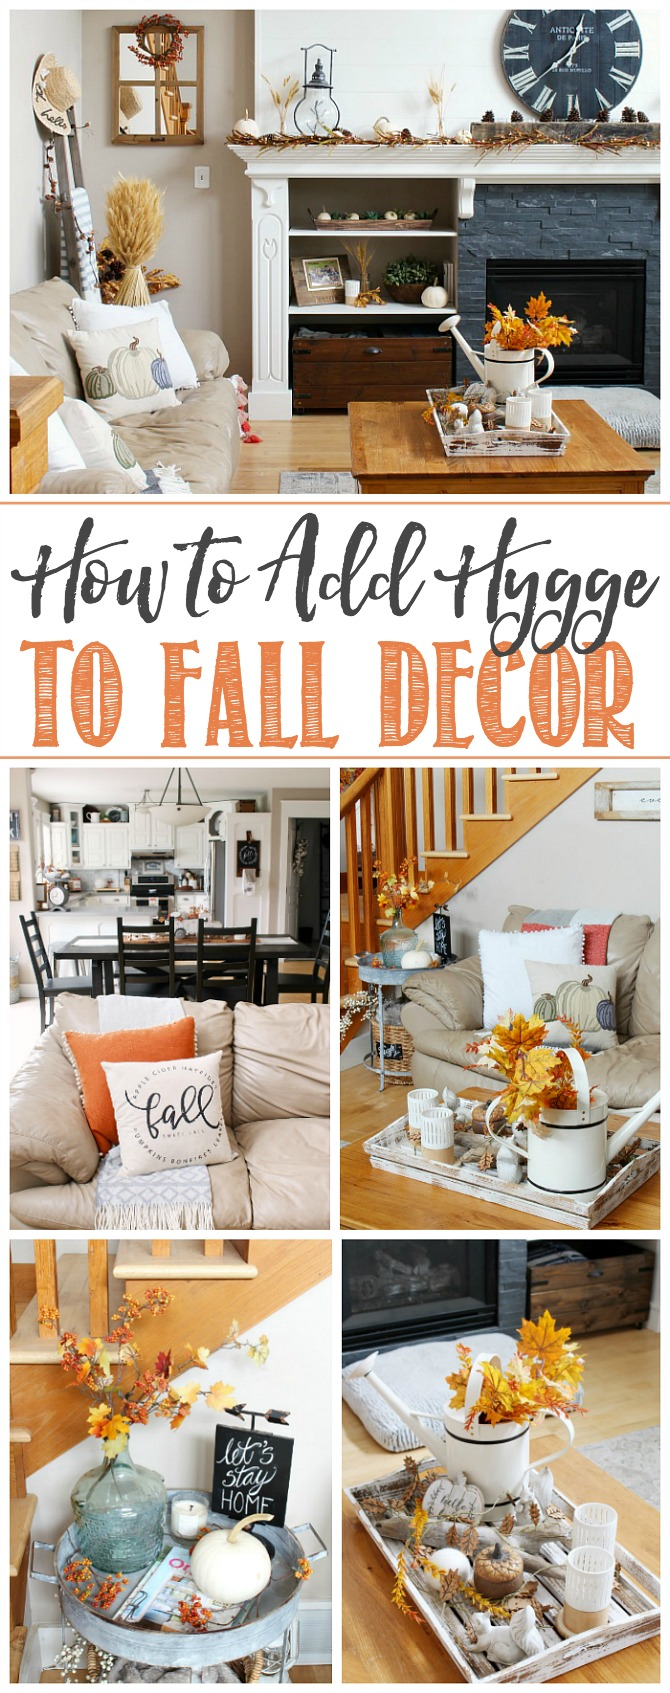 Collage of images from a fall family room decorated in traditional fall colors.